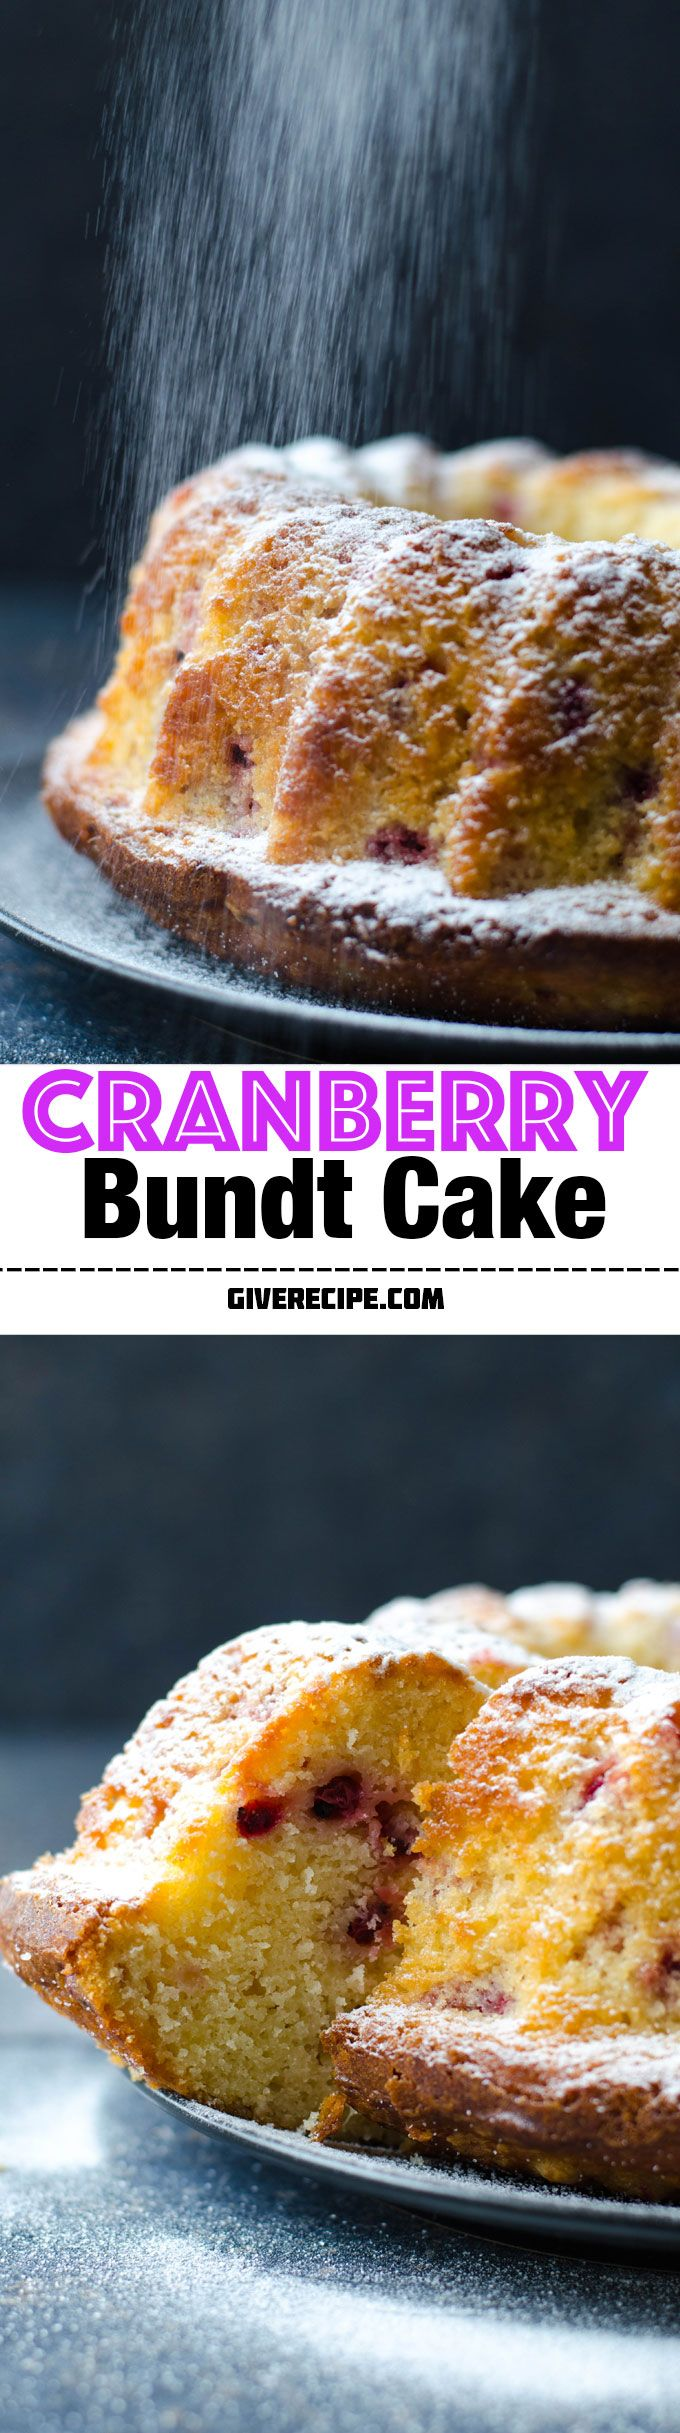 Cranberry Bundt Cake is made with my basic cake mixture. Very easy and simple. Moist inside and crusty outside.